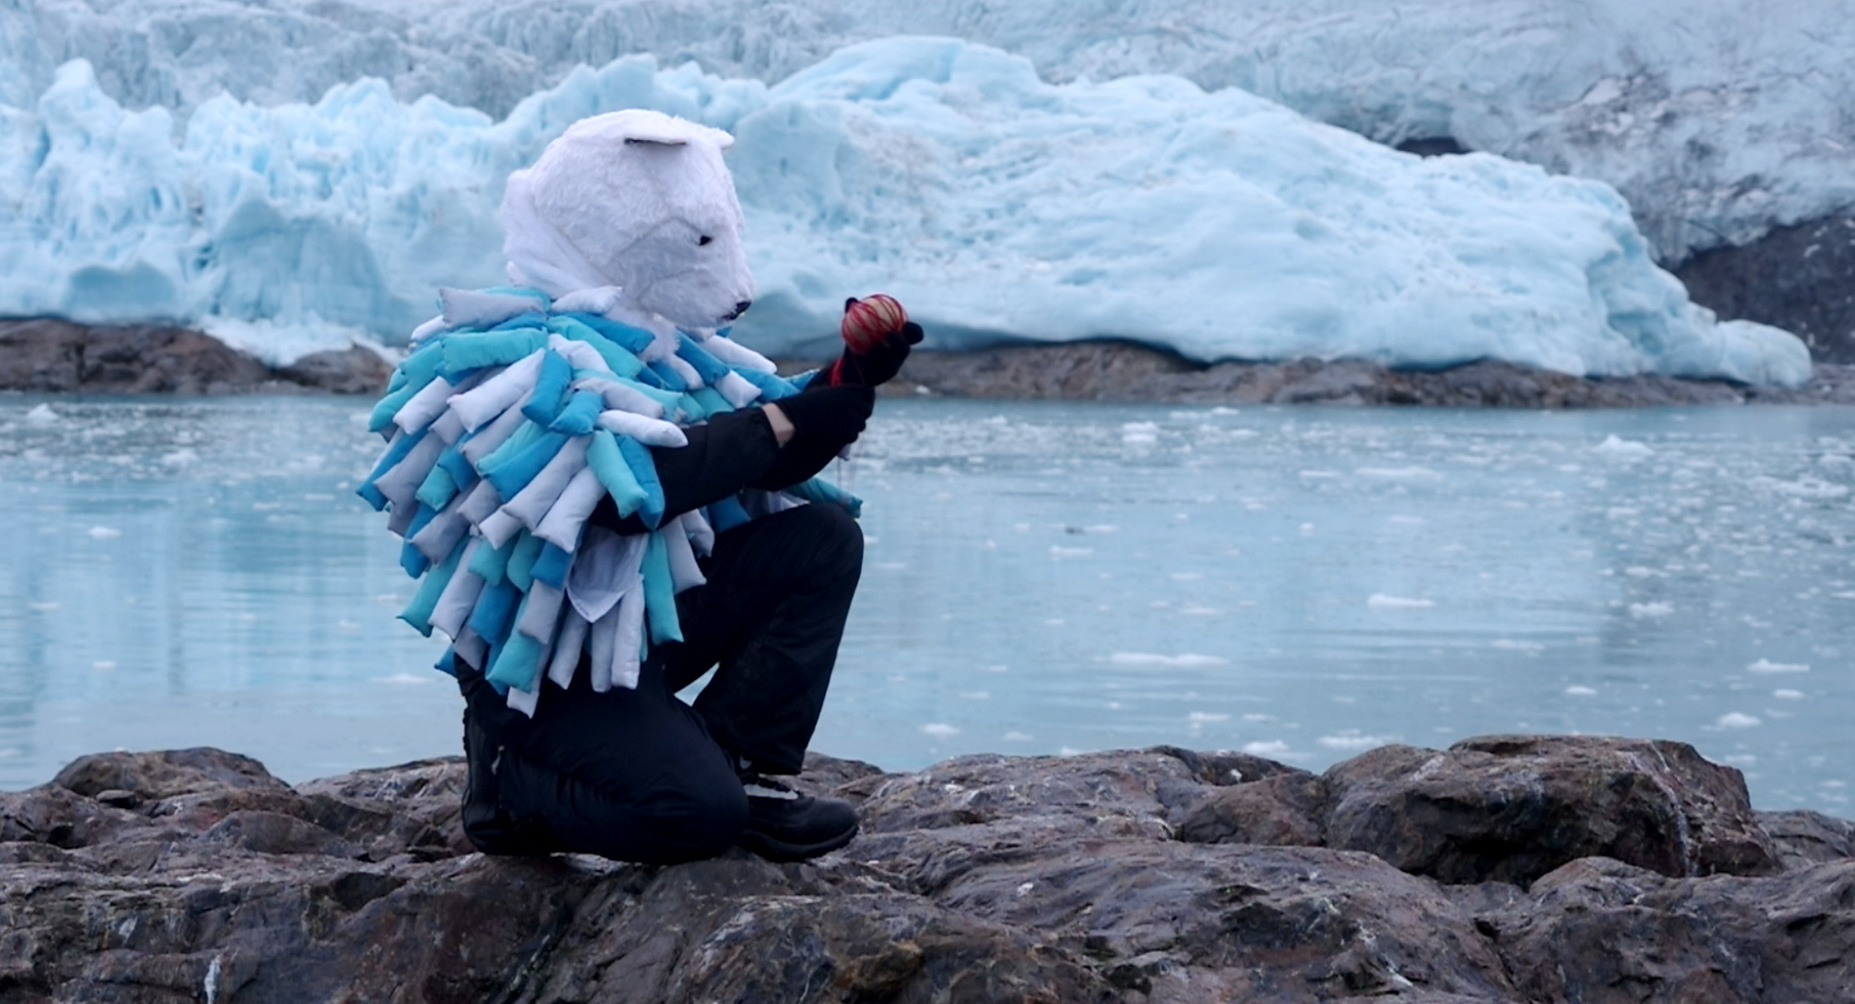 Video still from the arctic wild man